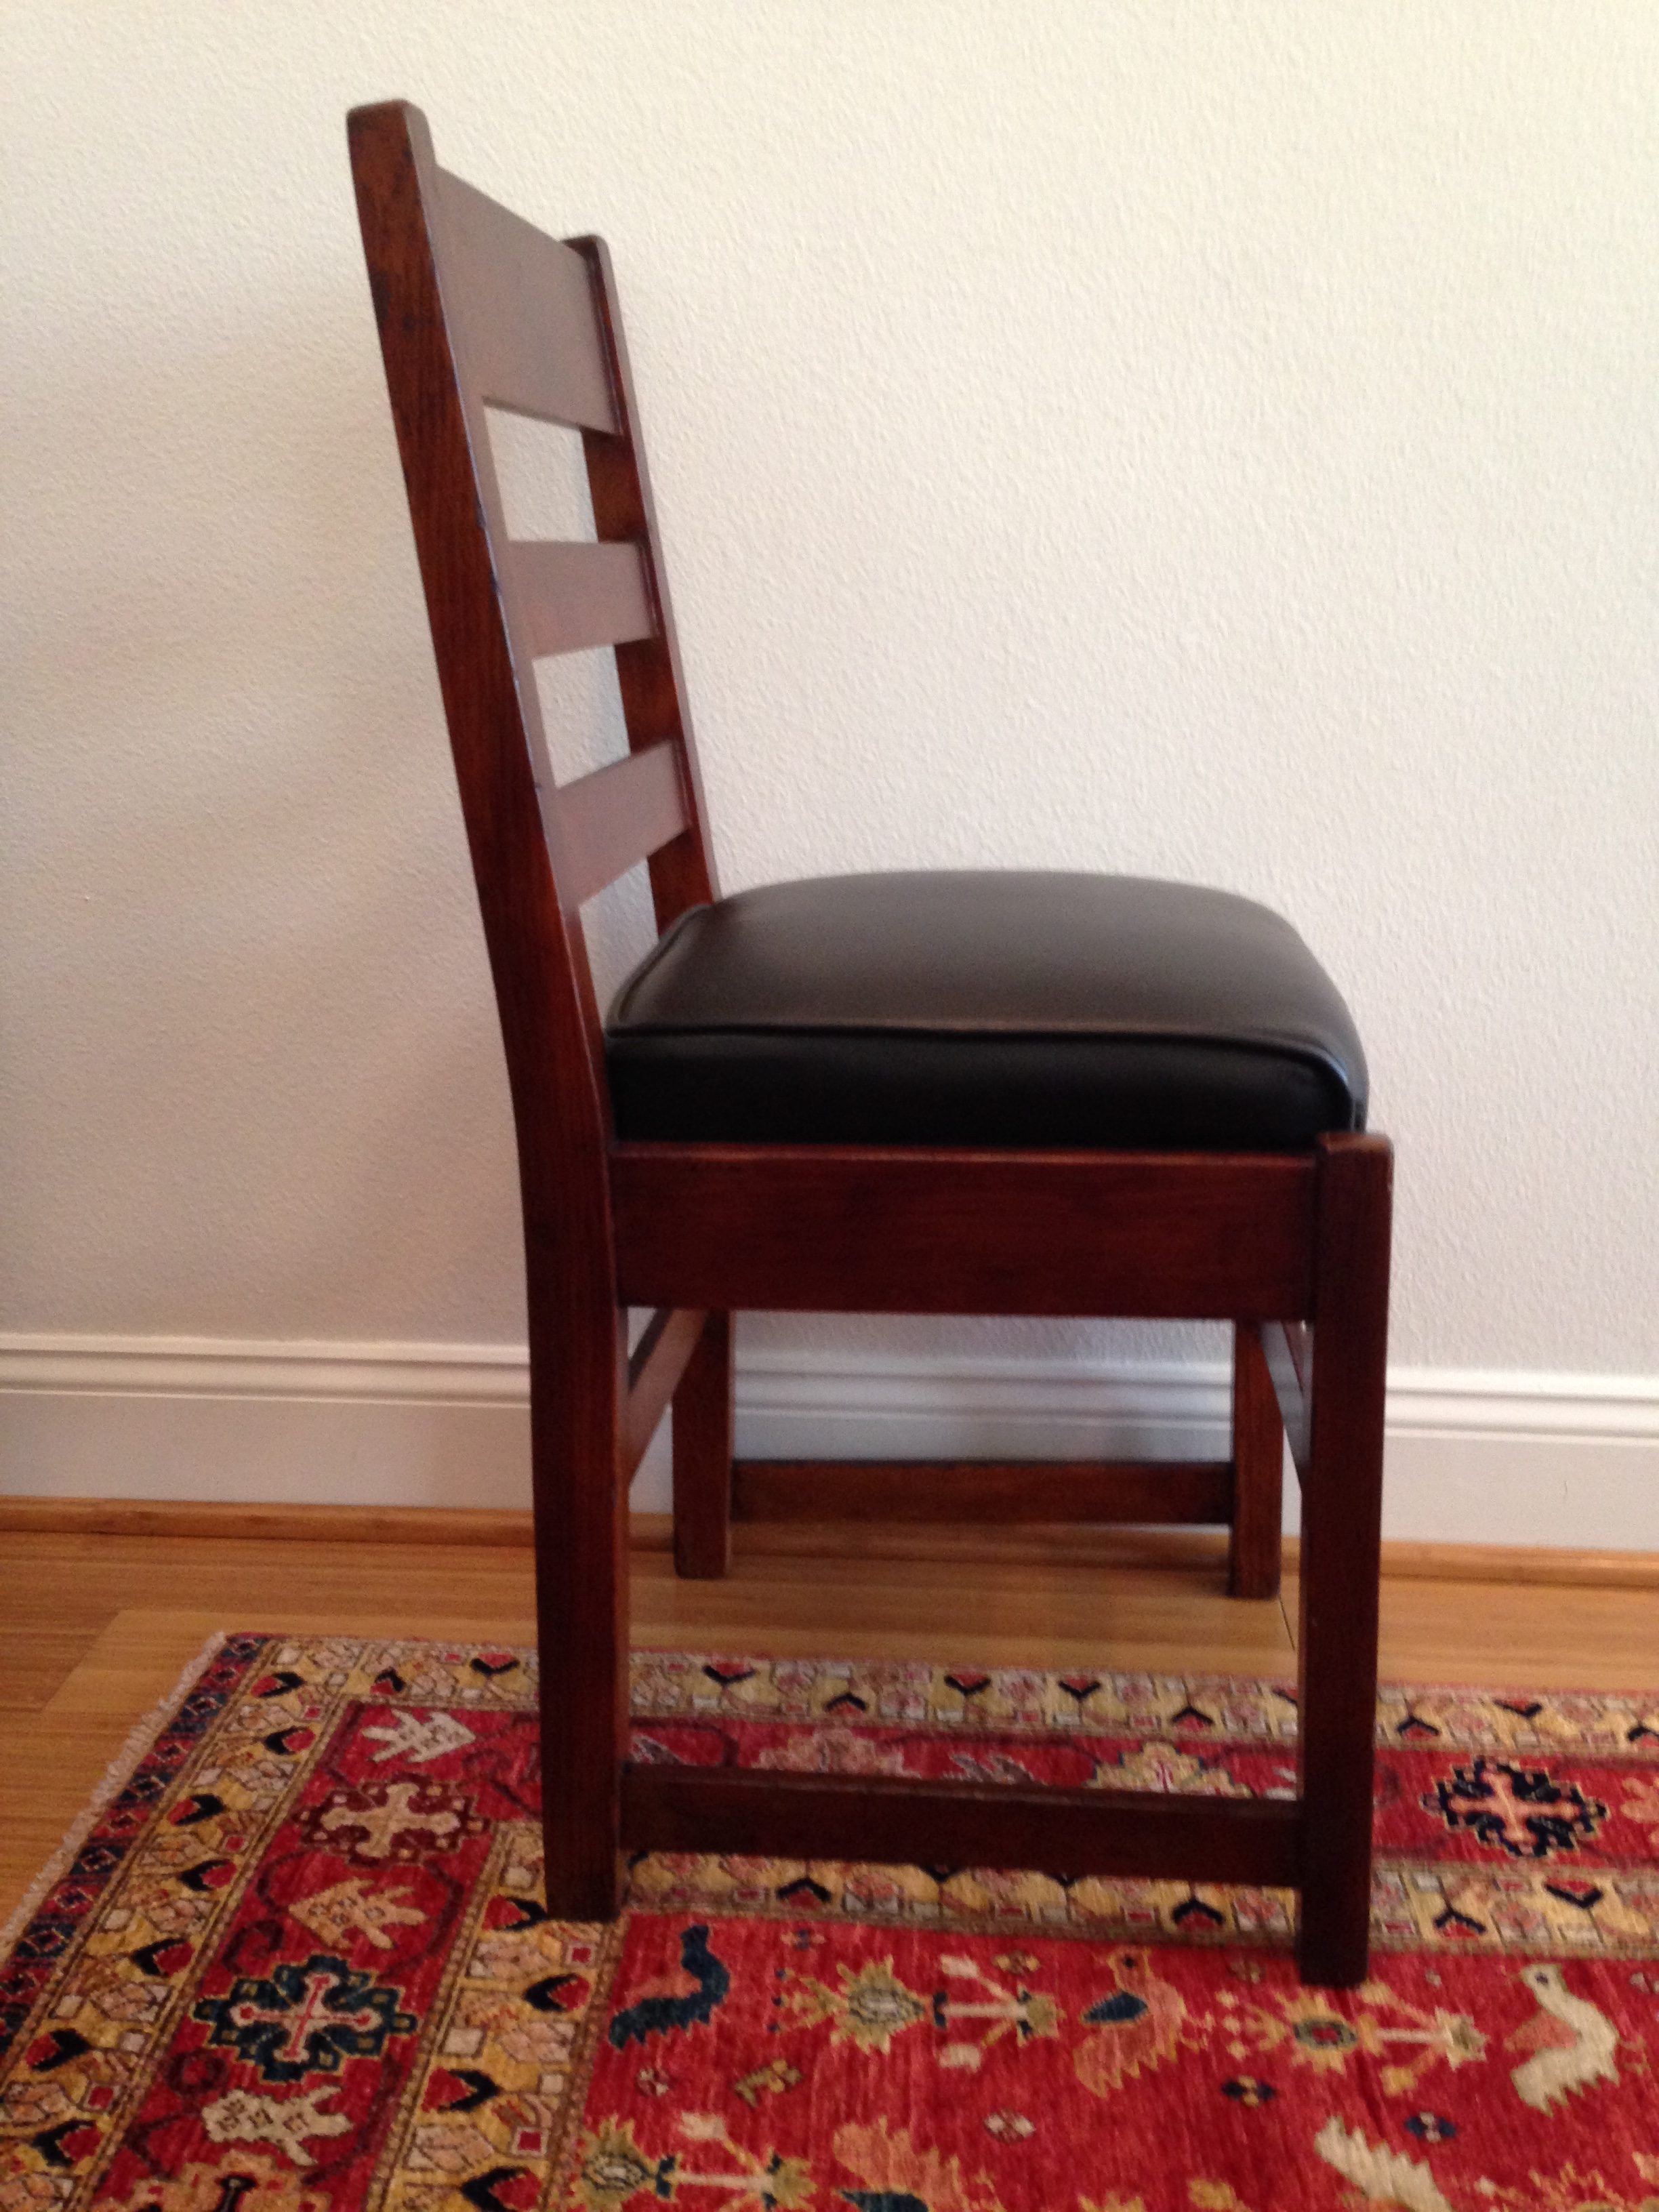 Stickley Dining Room Furniture: L&JG STICKLEY DINING CHAIRS